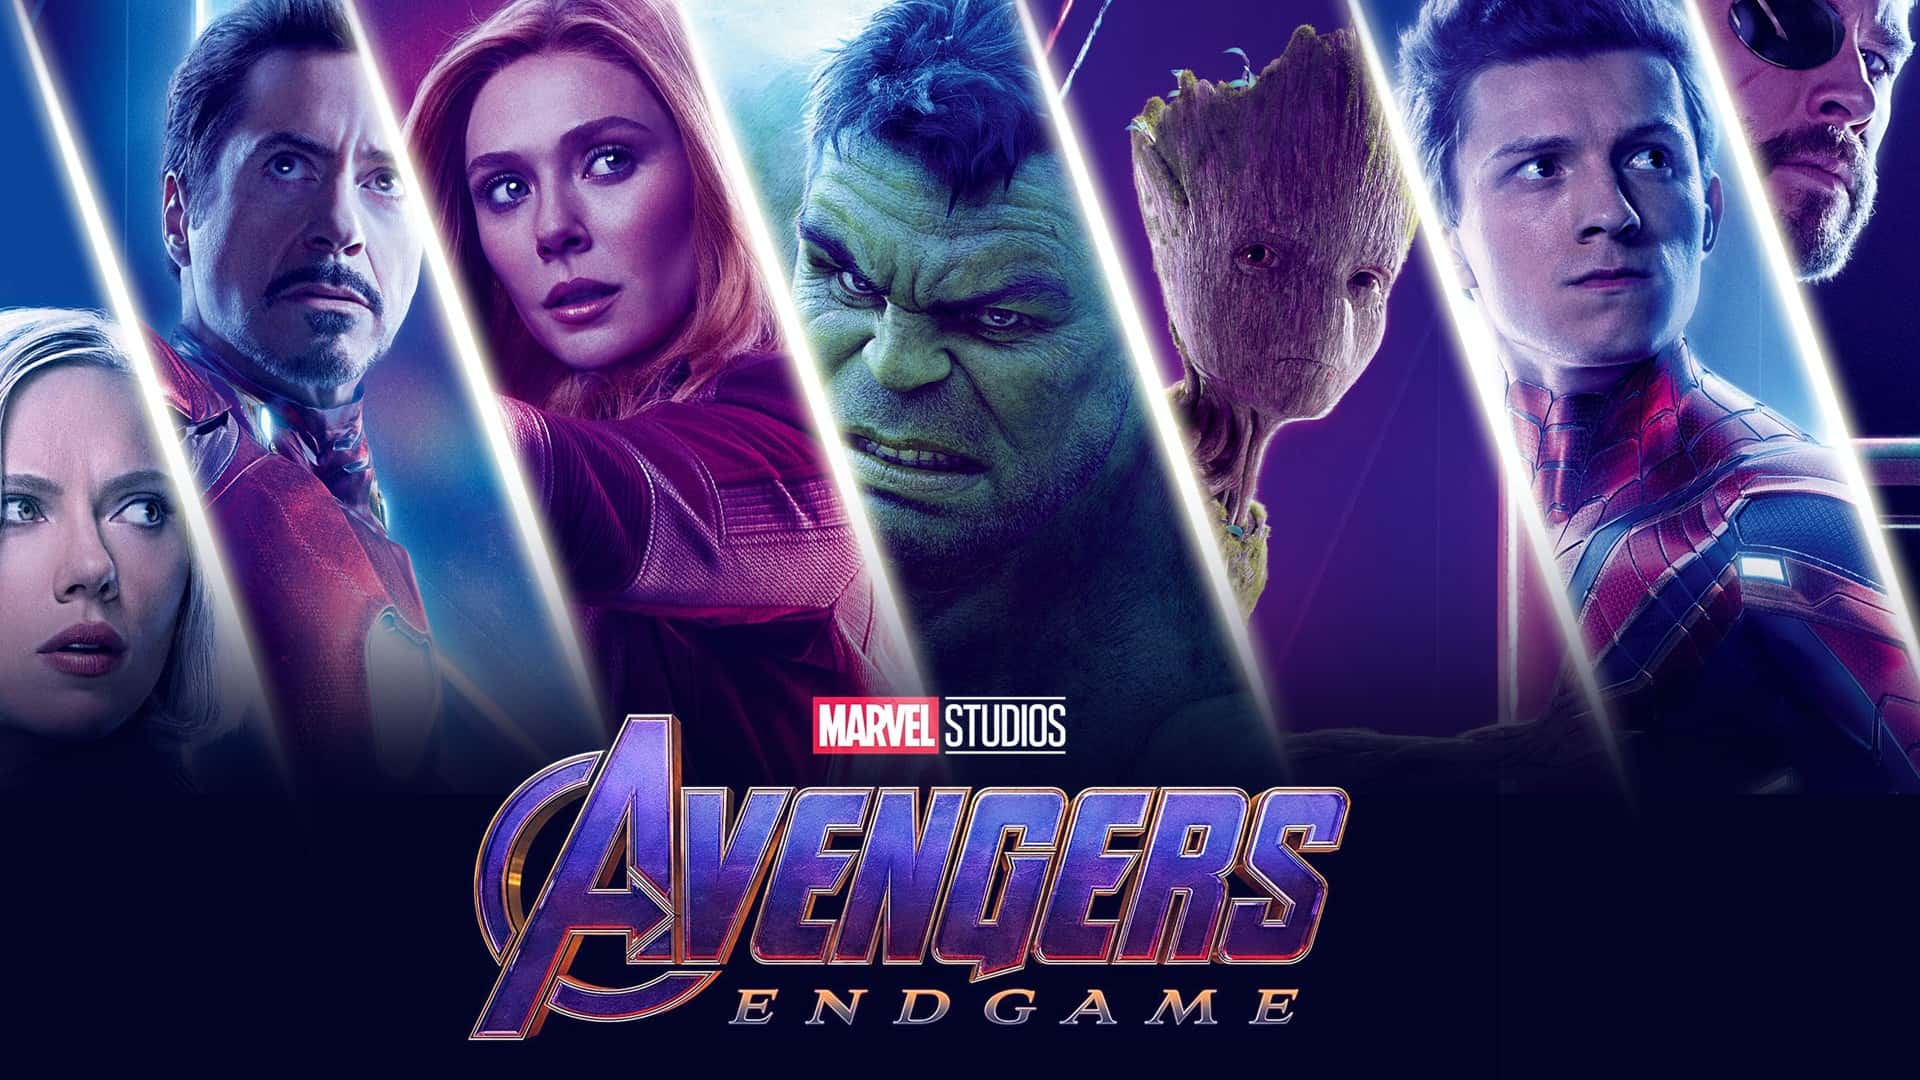 Avengers: Endgame' review: [Spoliers] The grand finale has